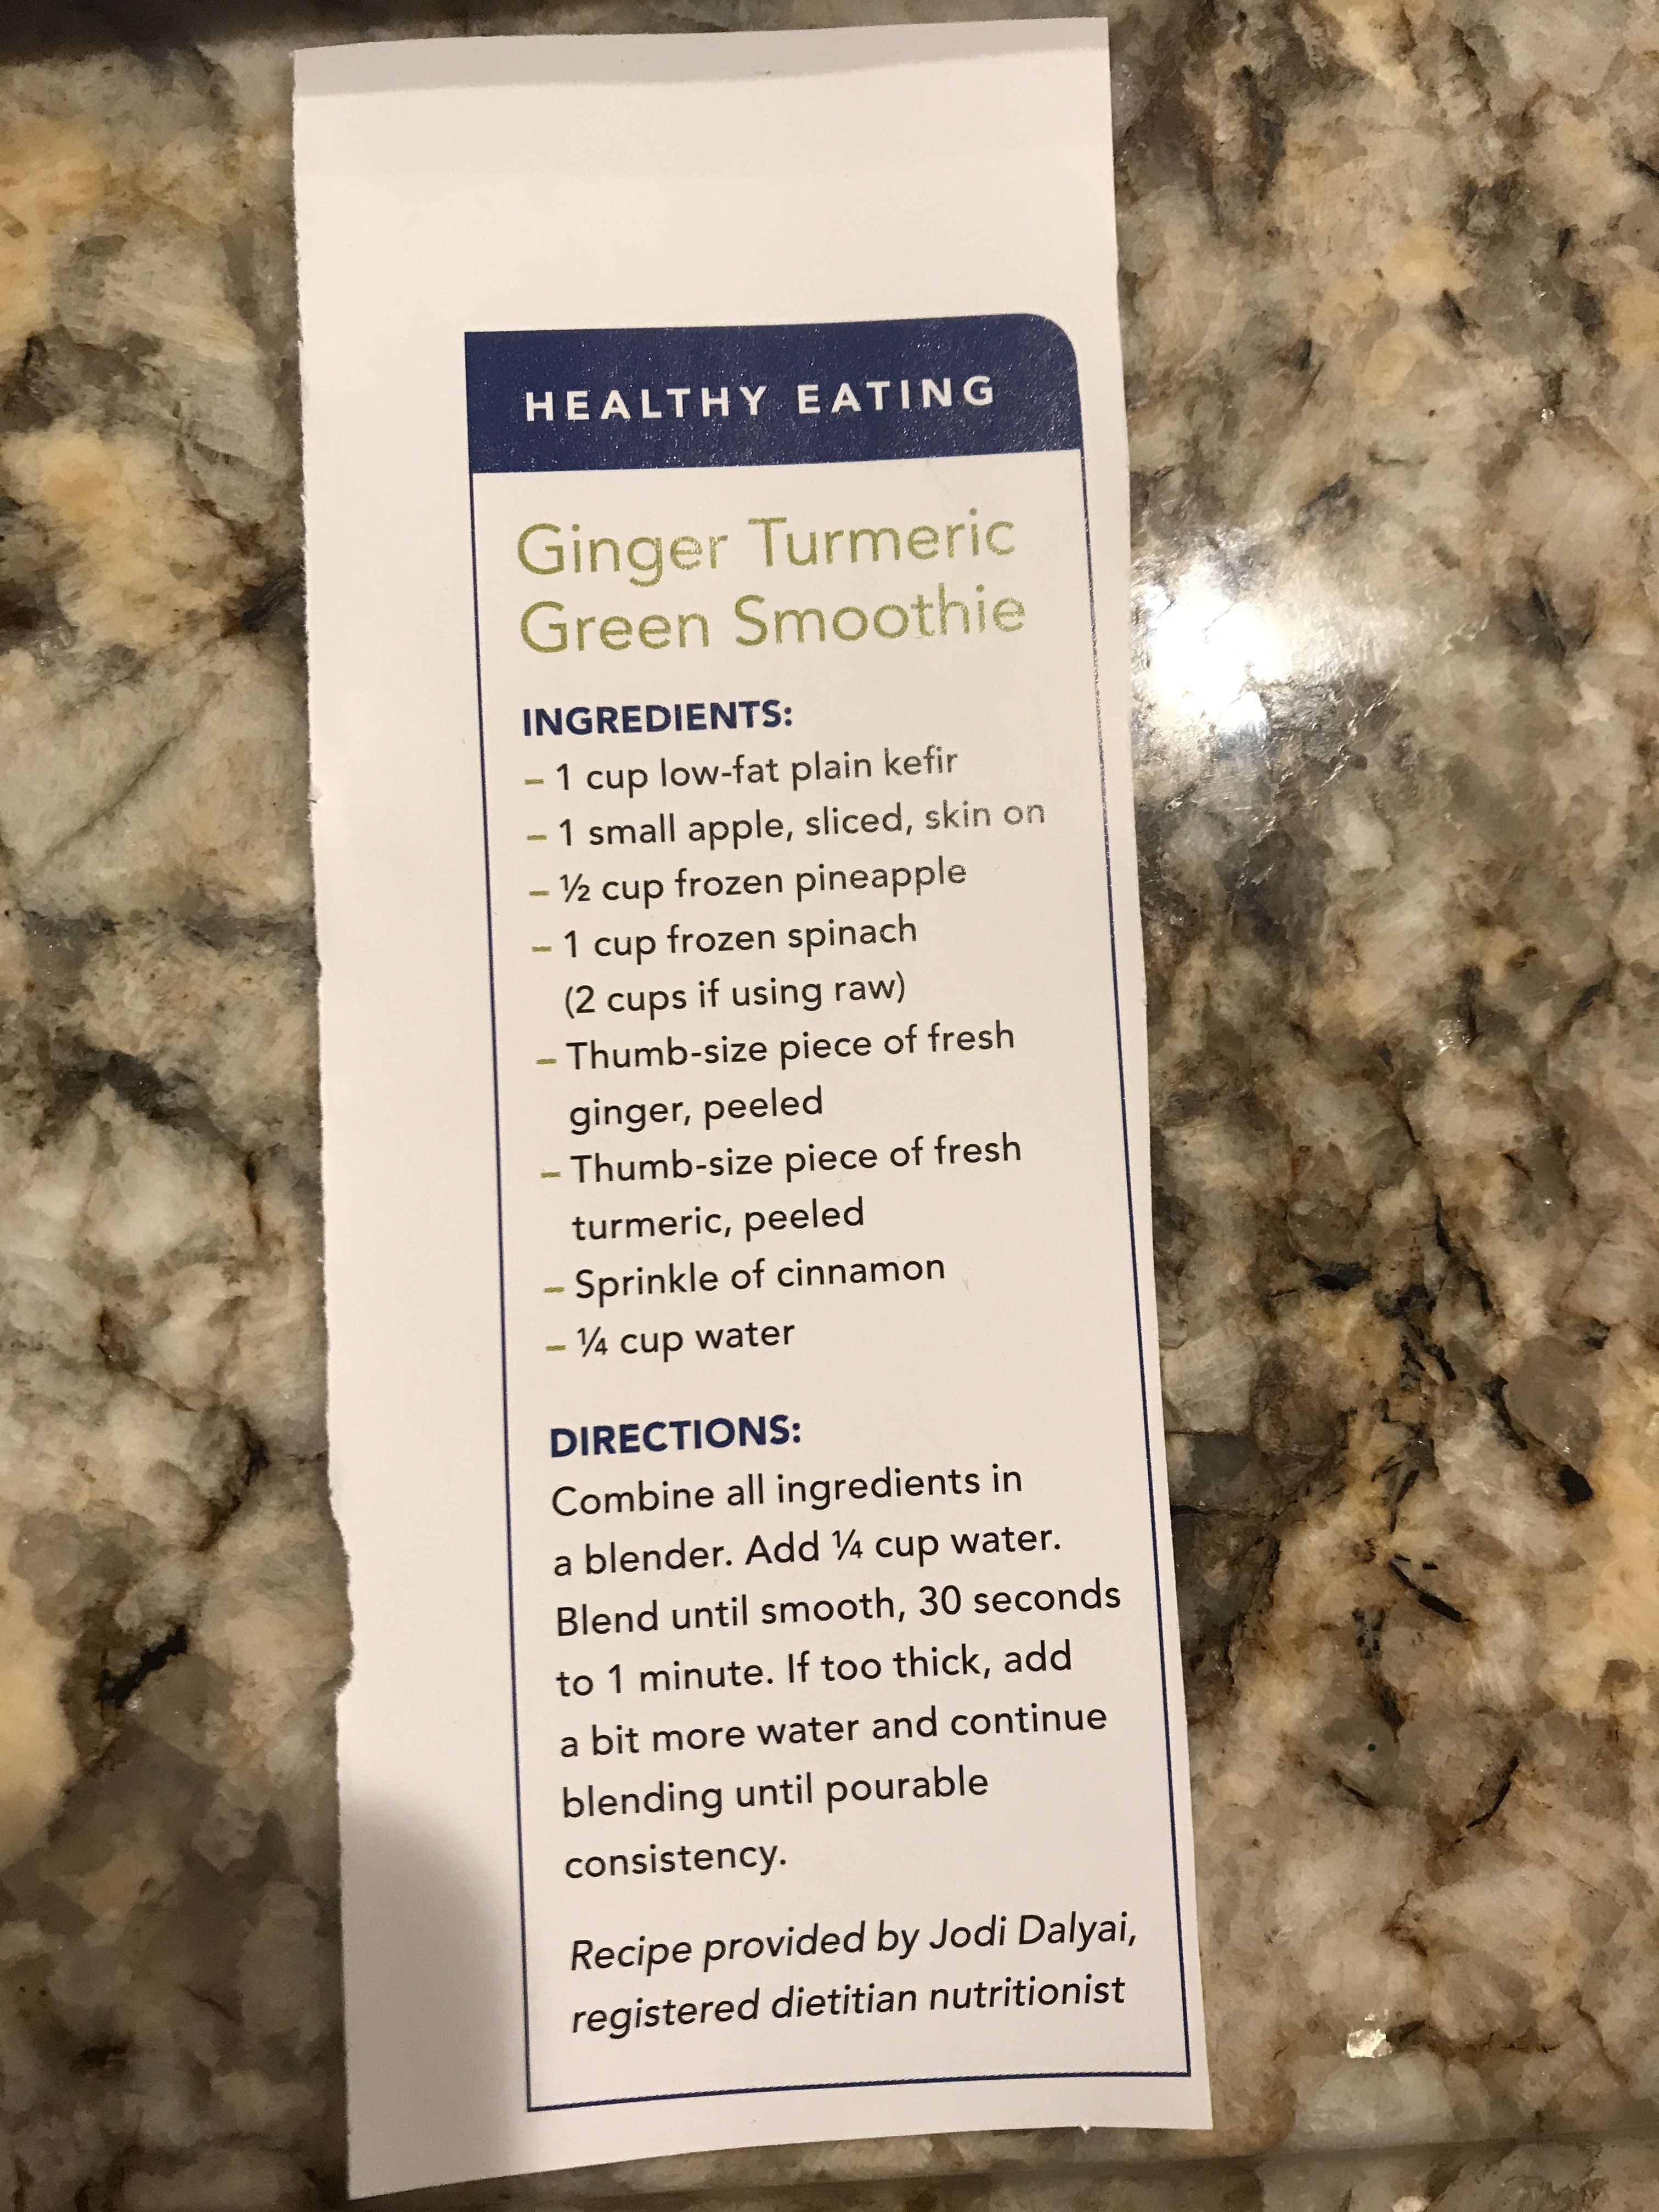 Ginger turmeric green smoothie how to eat ginger